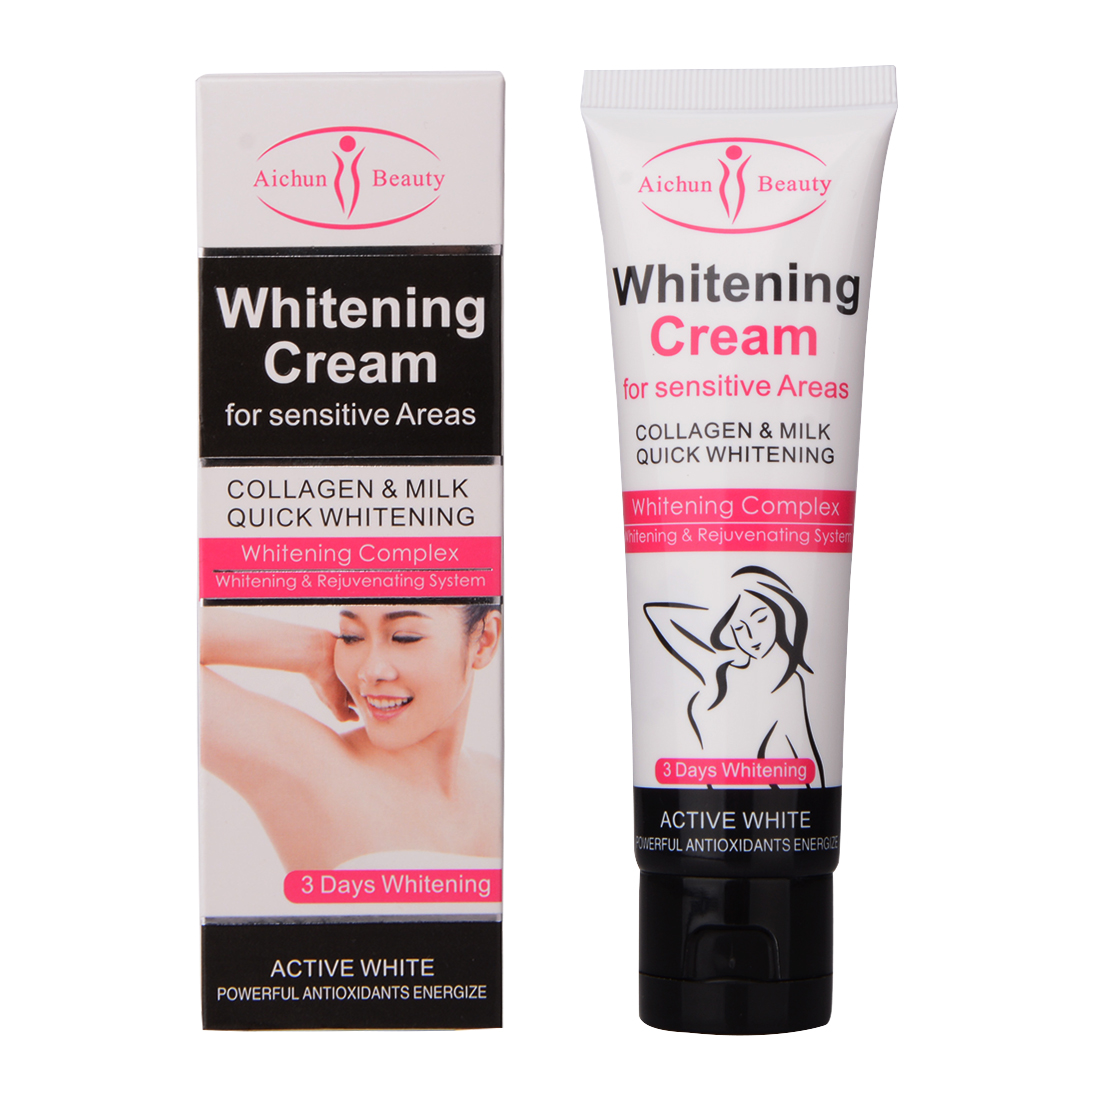 Beauty & Health 50ml Beauty Body Cream Armpit Whitening Cream Between Legs Knees Private Parts Underarm Whitening Formula Armpit Whitener Hot!!!